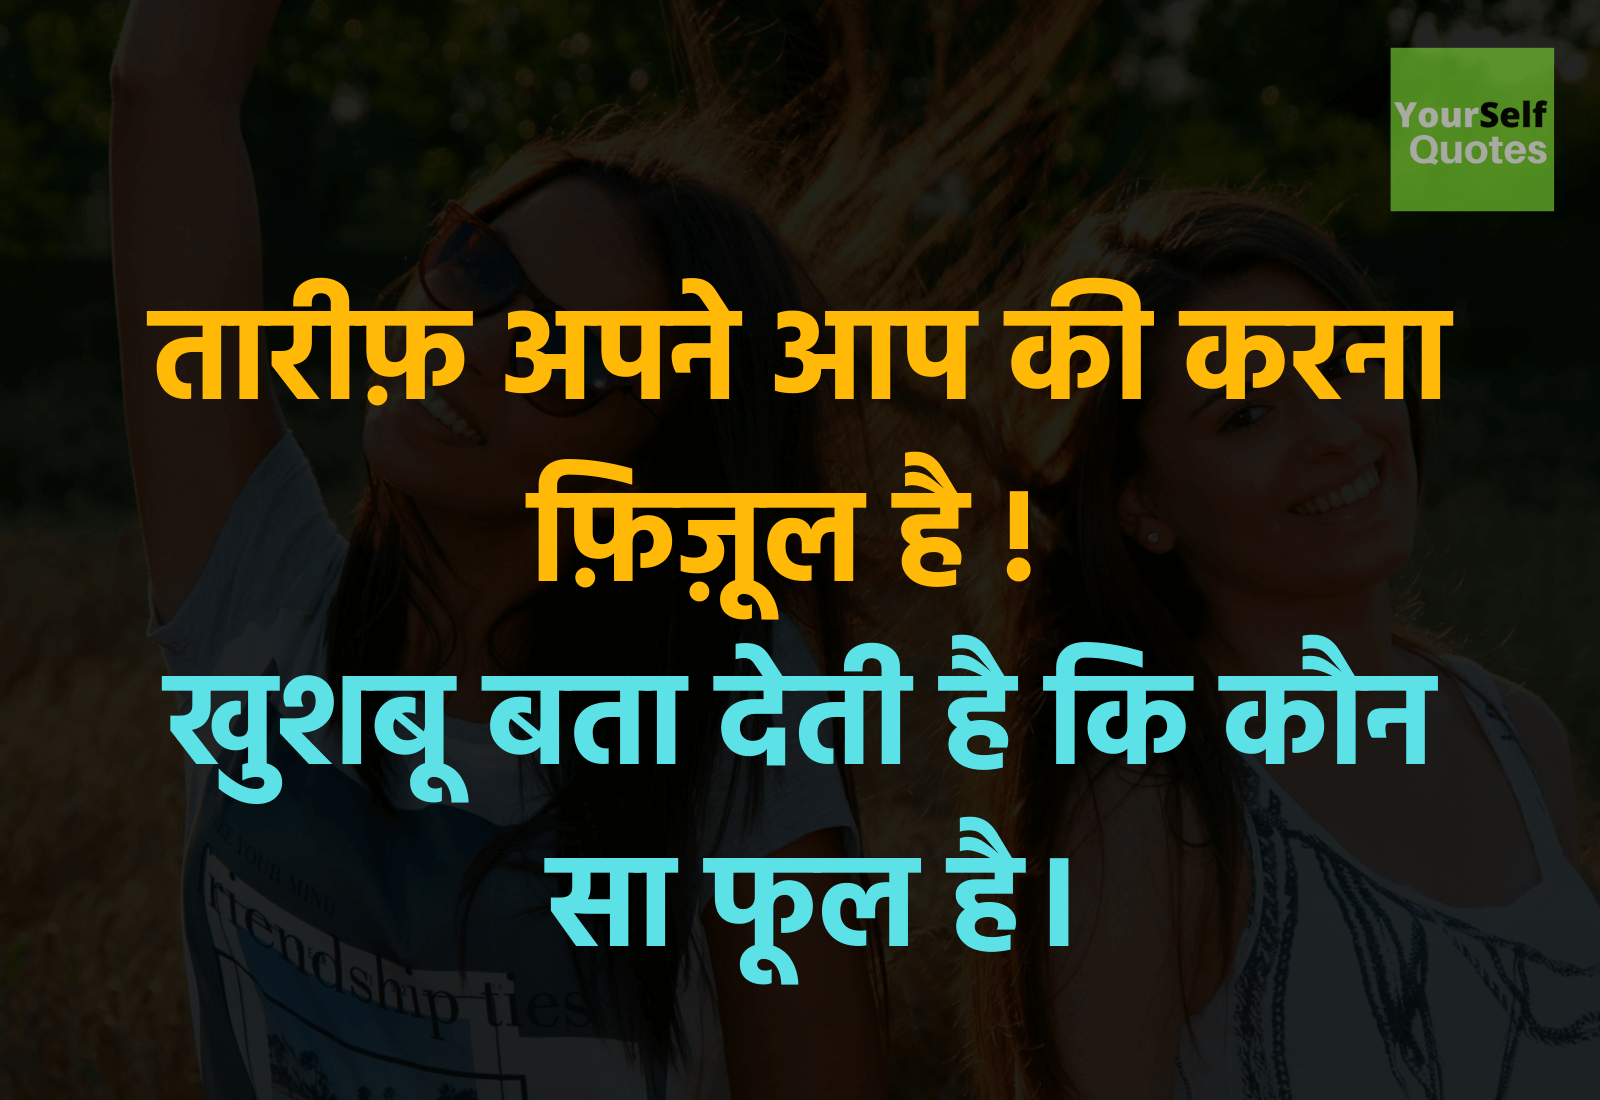 Best Whatsapp Status Hindi शनदर वहटसअप